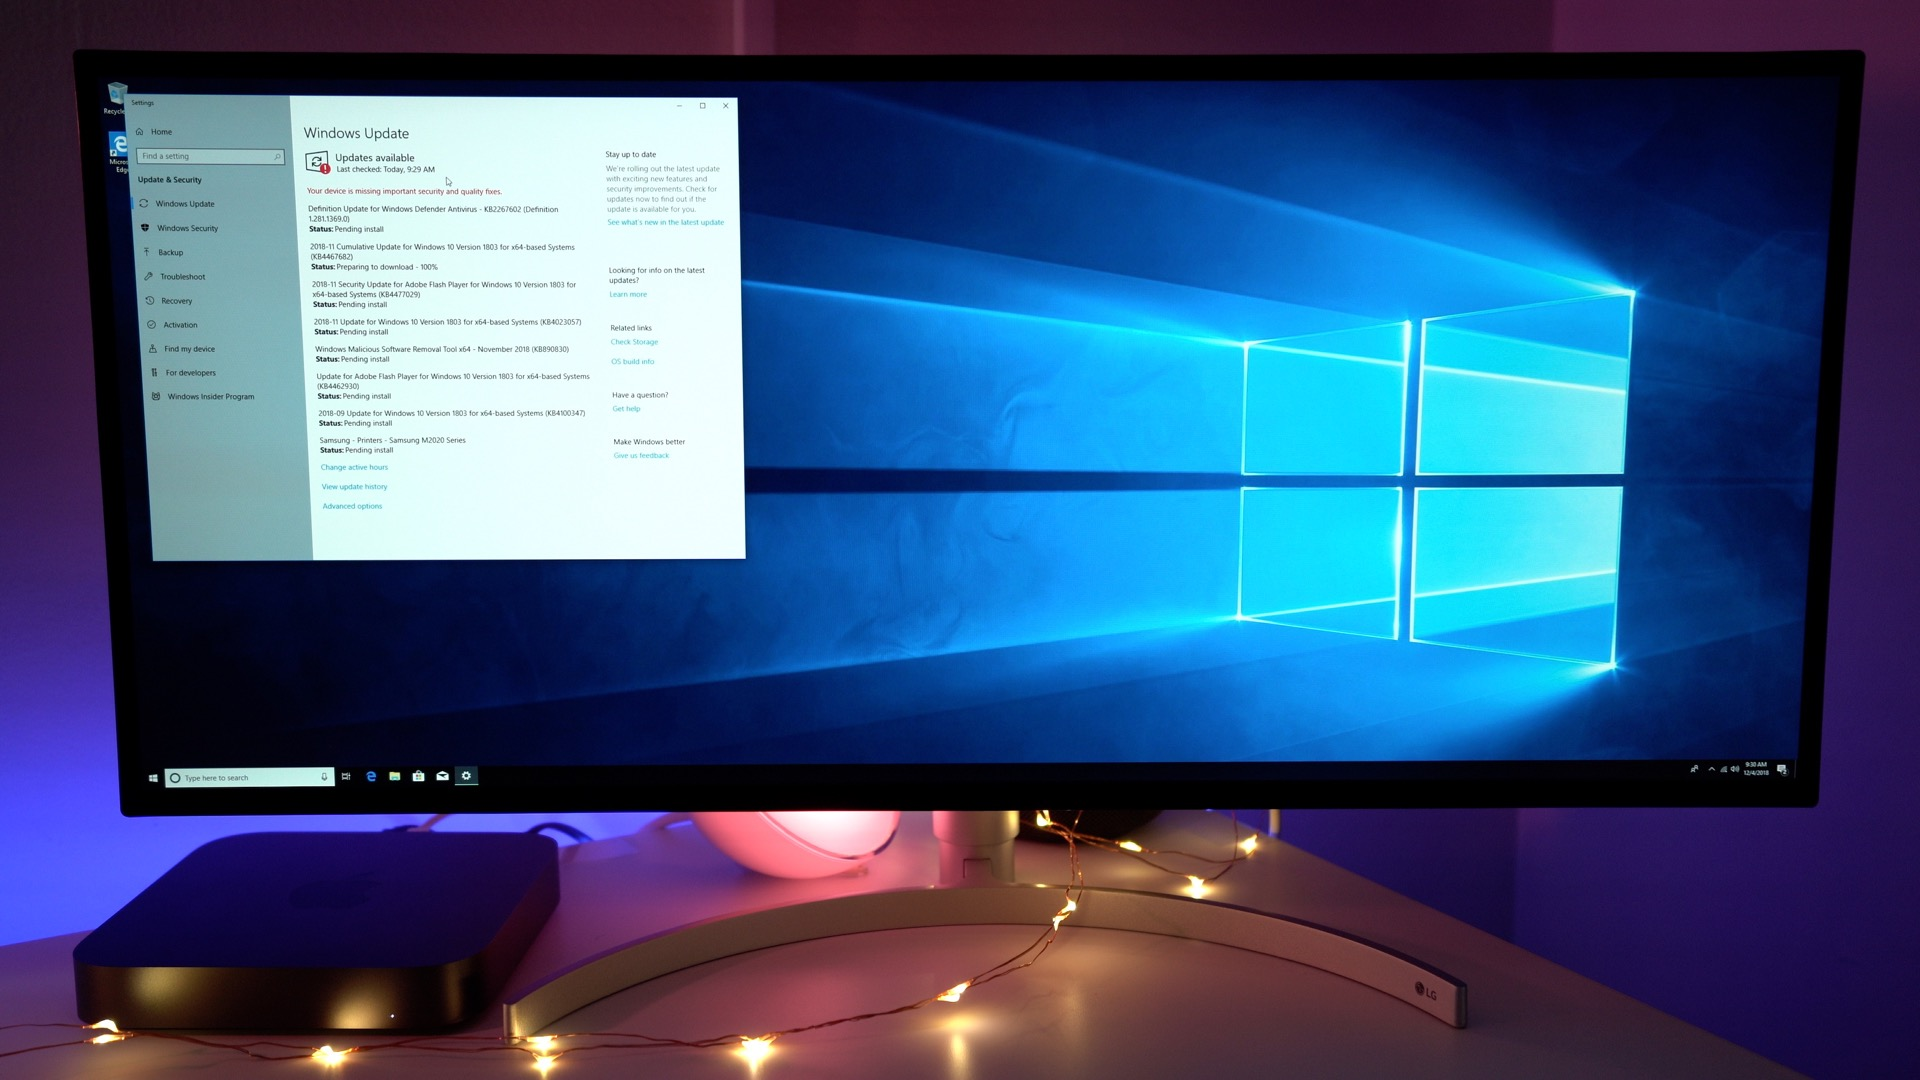 boot camp windows 10 download